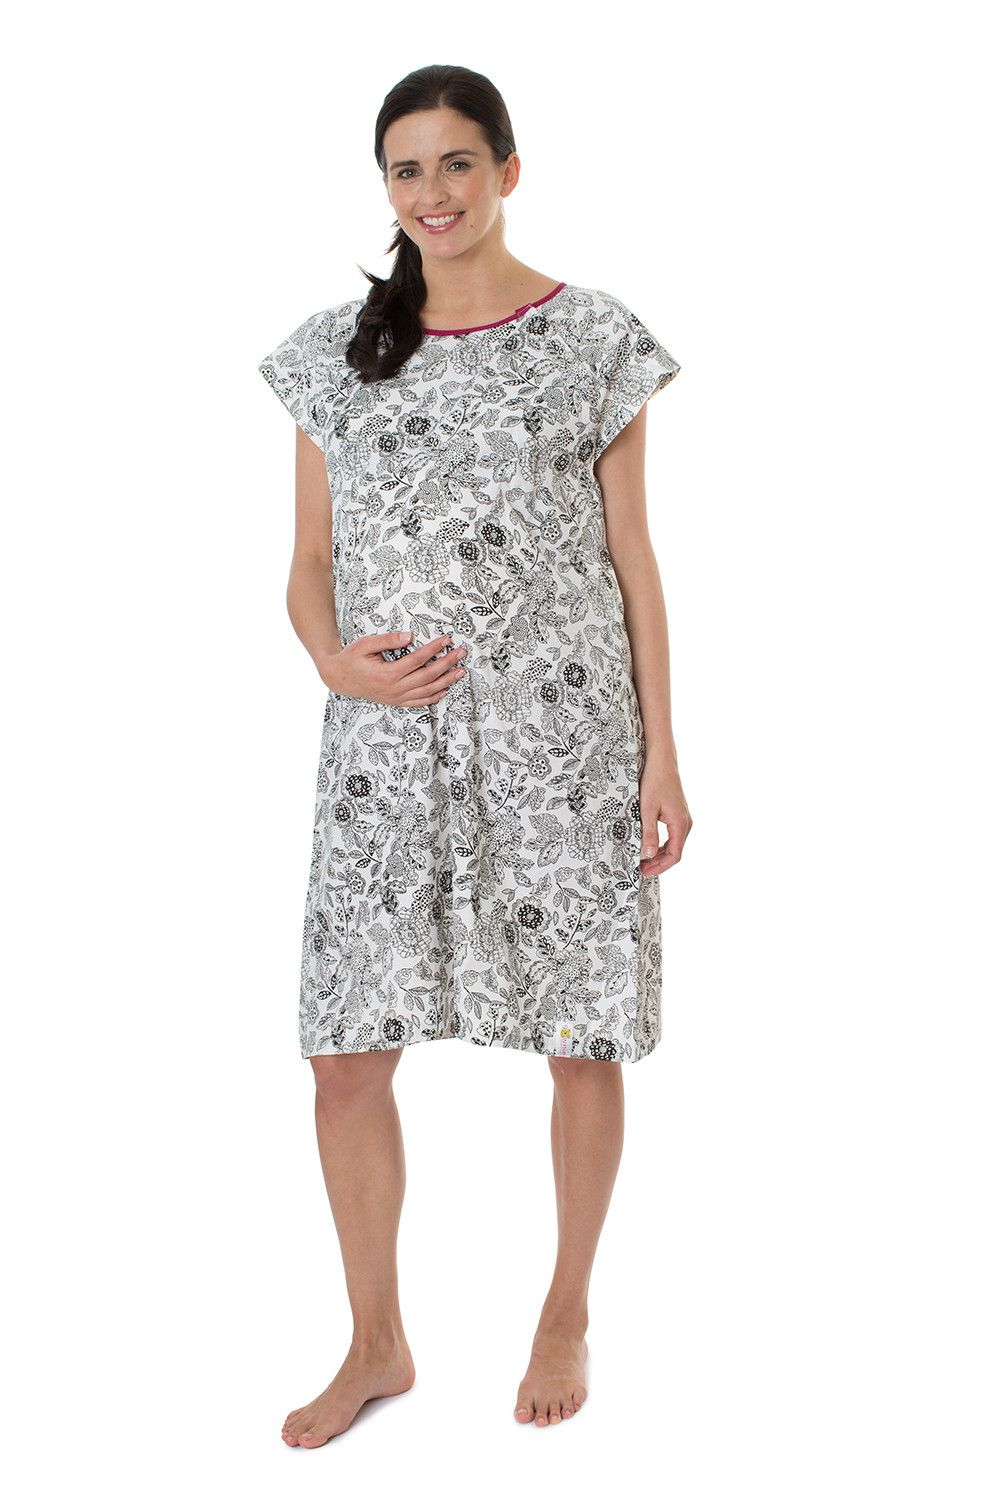 Ella Gownie Maternity Delivery Labor Hospital Birthing Gown ...